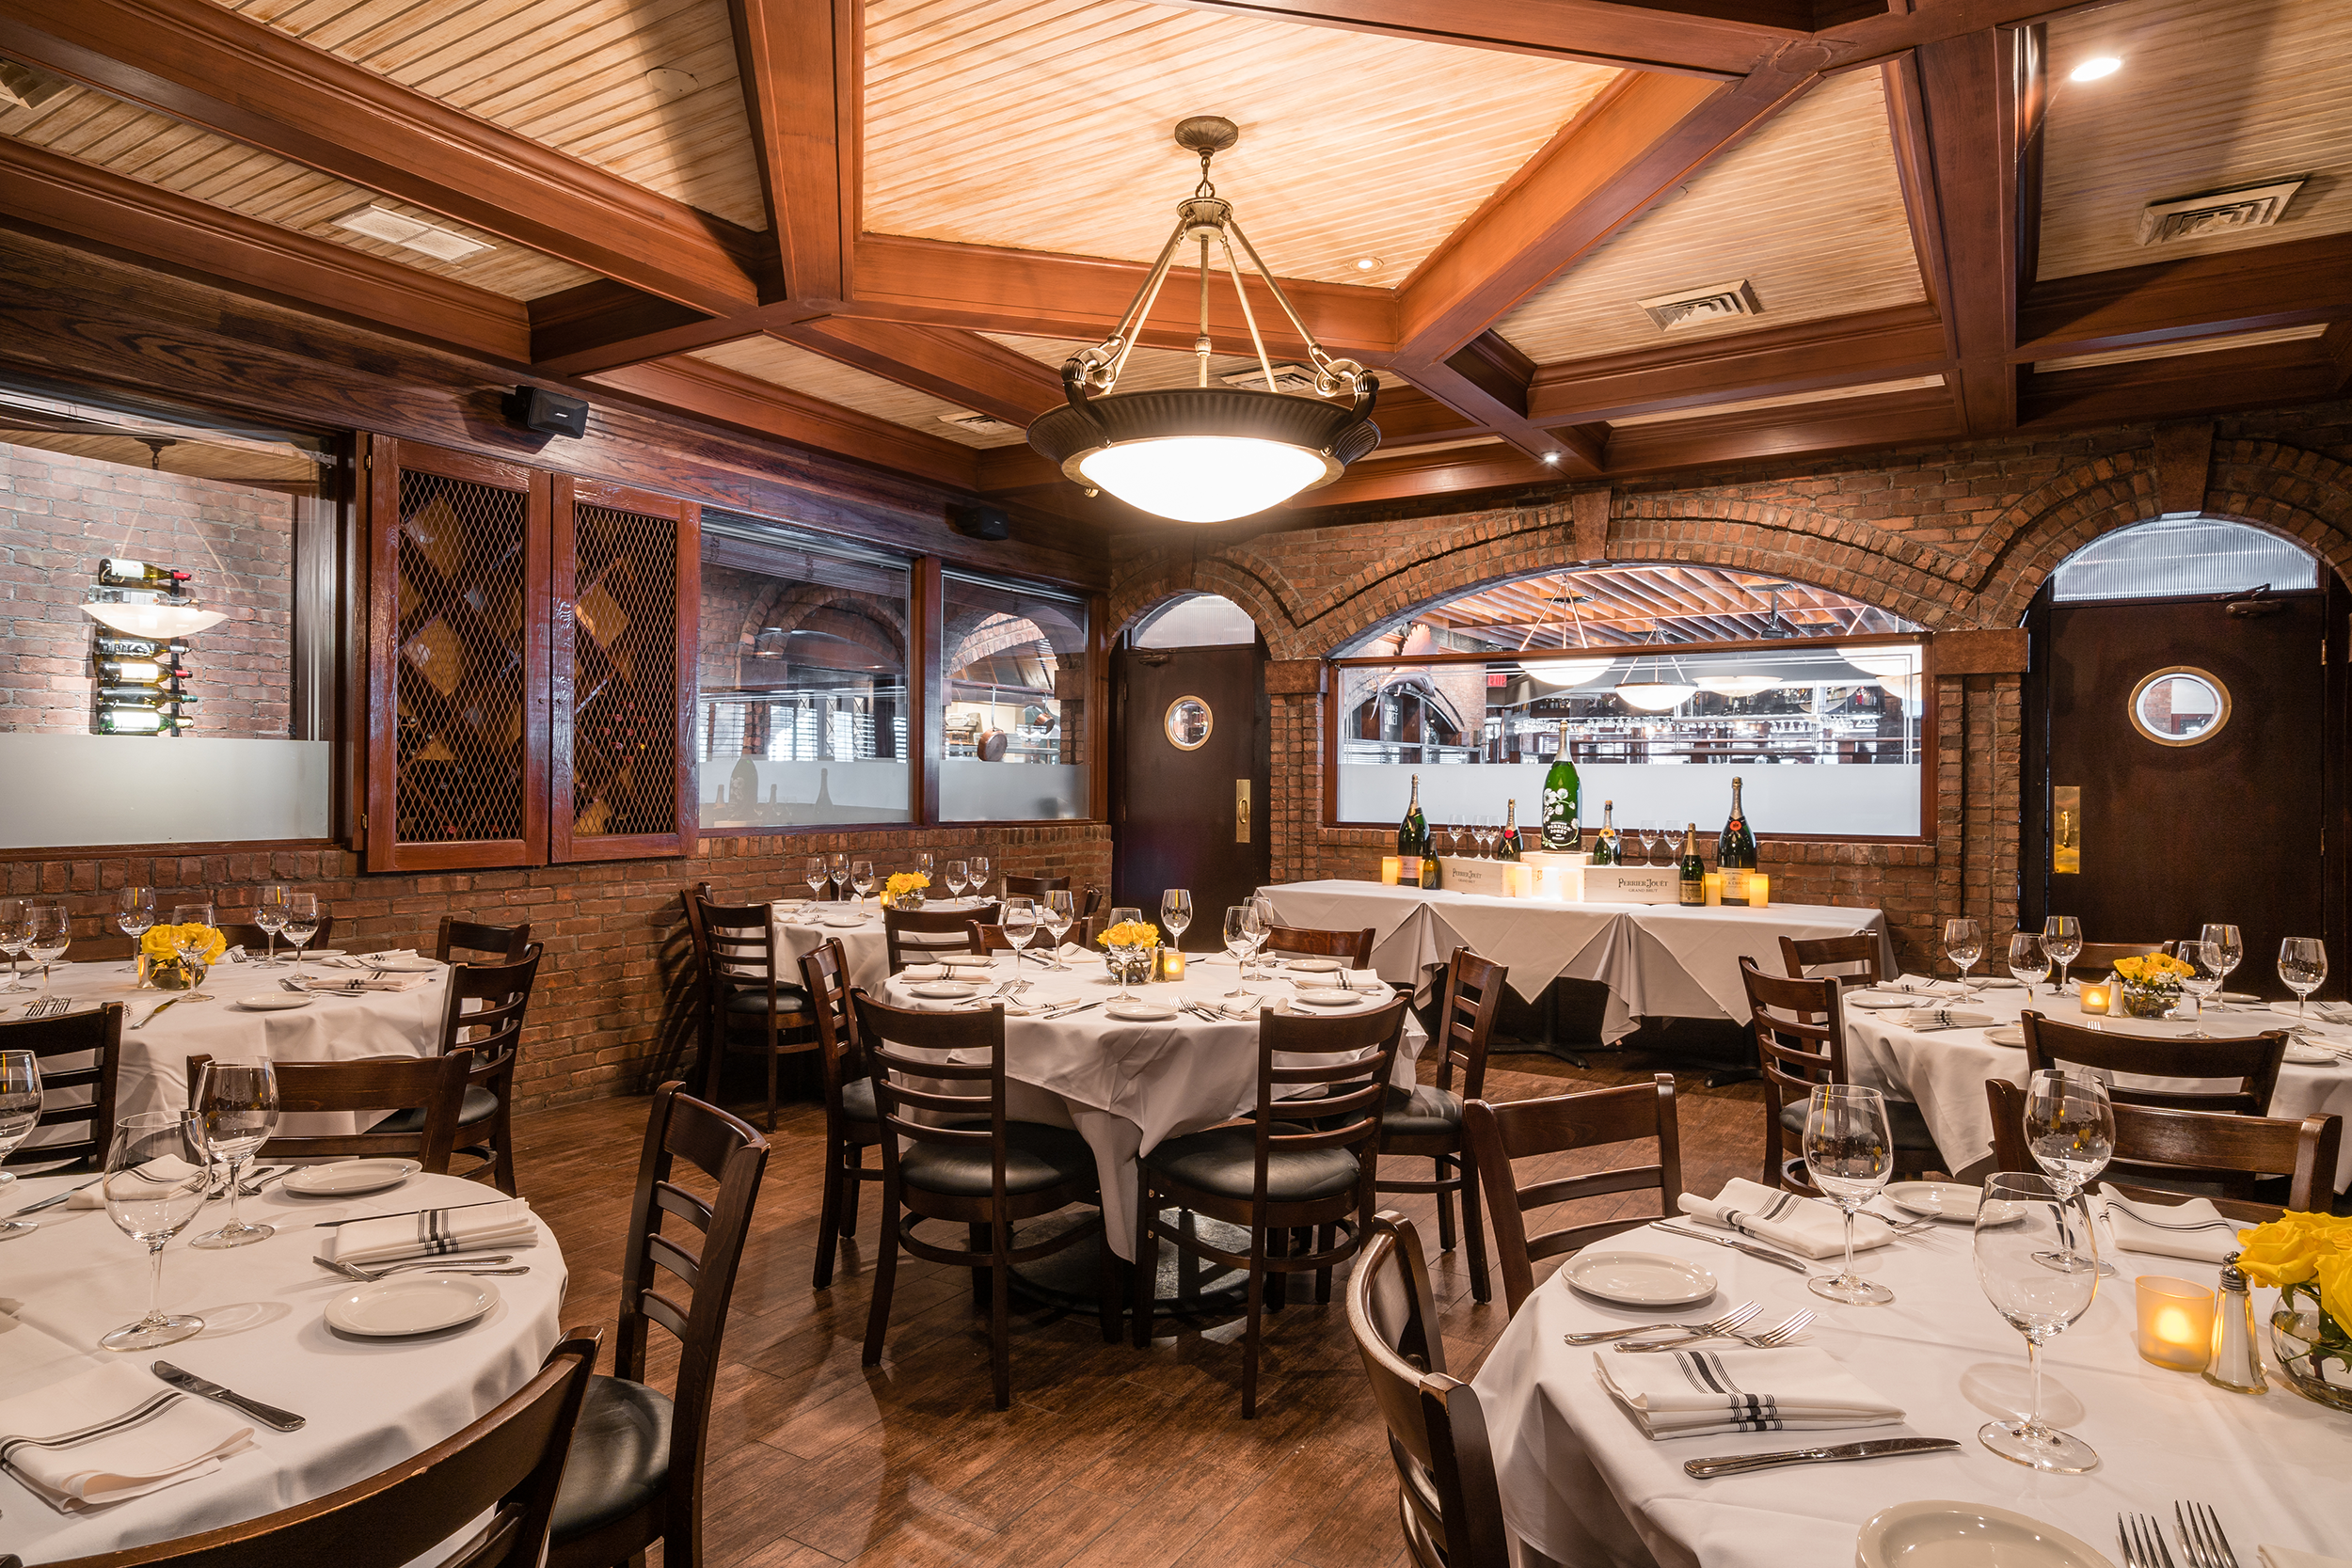 Private Dining at Chamberlain's Fish Market Grill - The Herring Room - seats up to 45